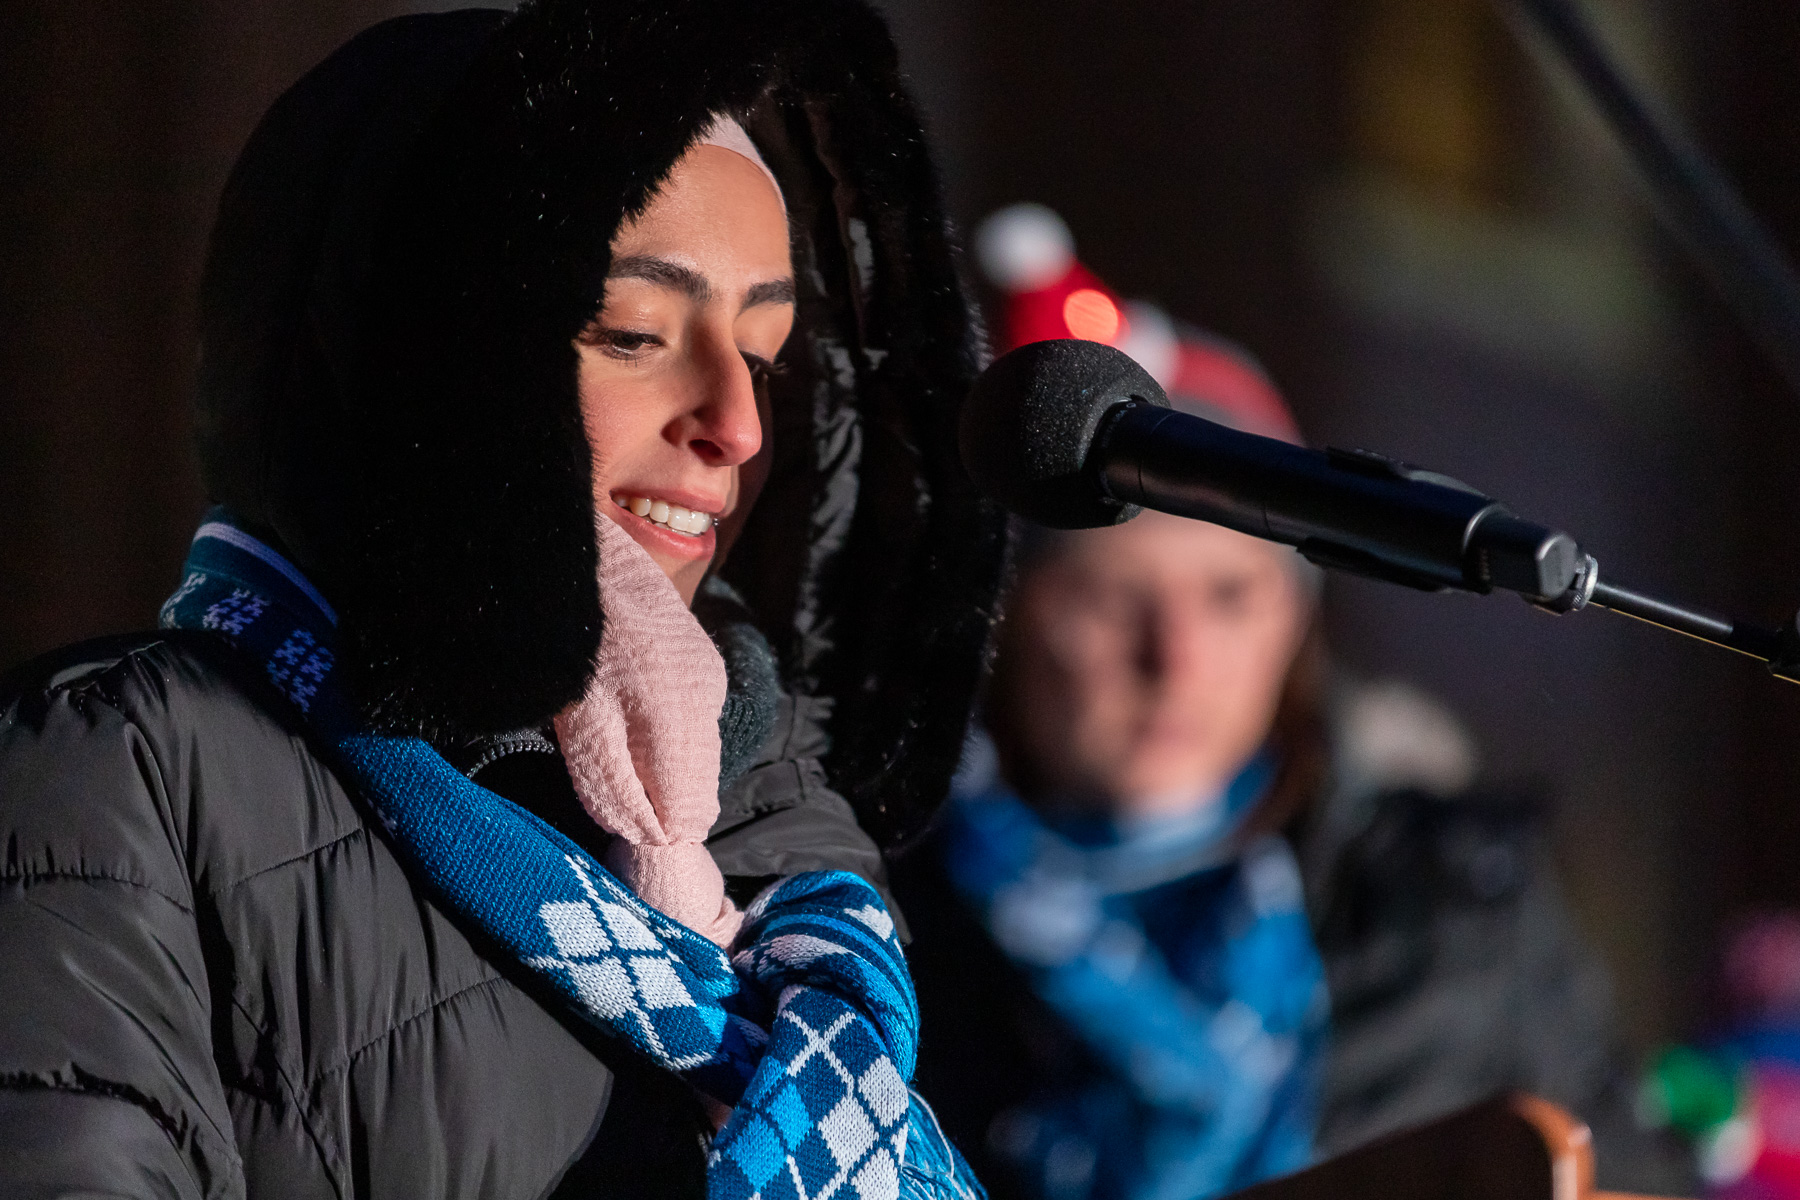 Watfae Zayed, a sophomore majoring in neuroscience, member of the Student Government Association and United Muslims Moving Ahead, served as student emcee for the event. (DePaul University/Jeff Carrion)